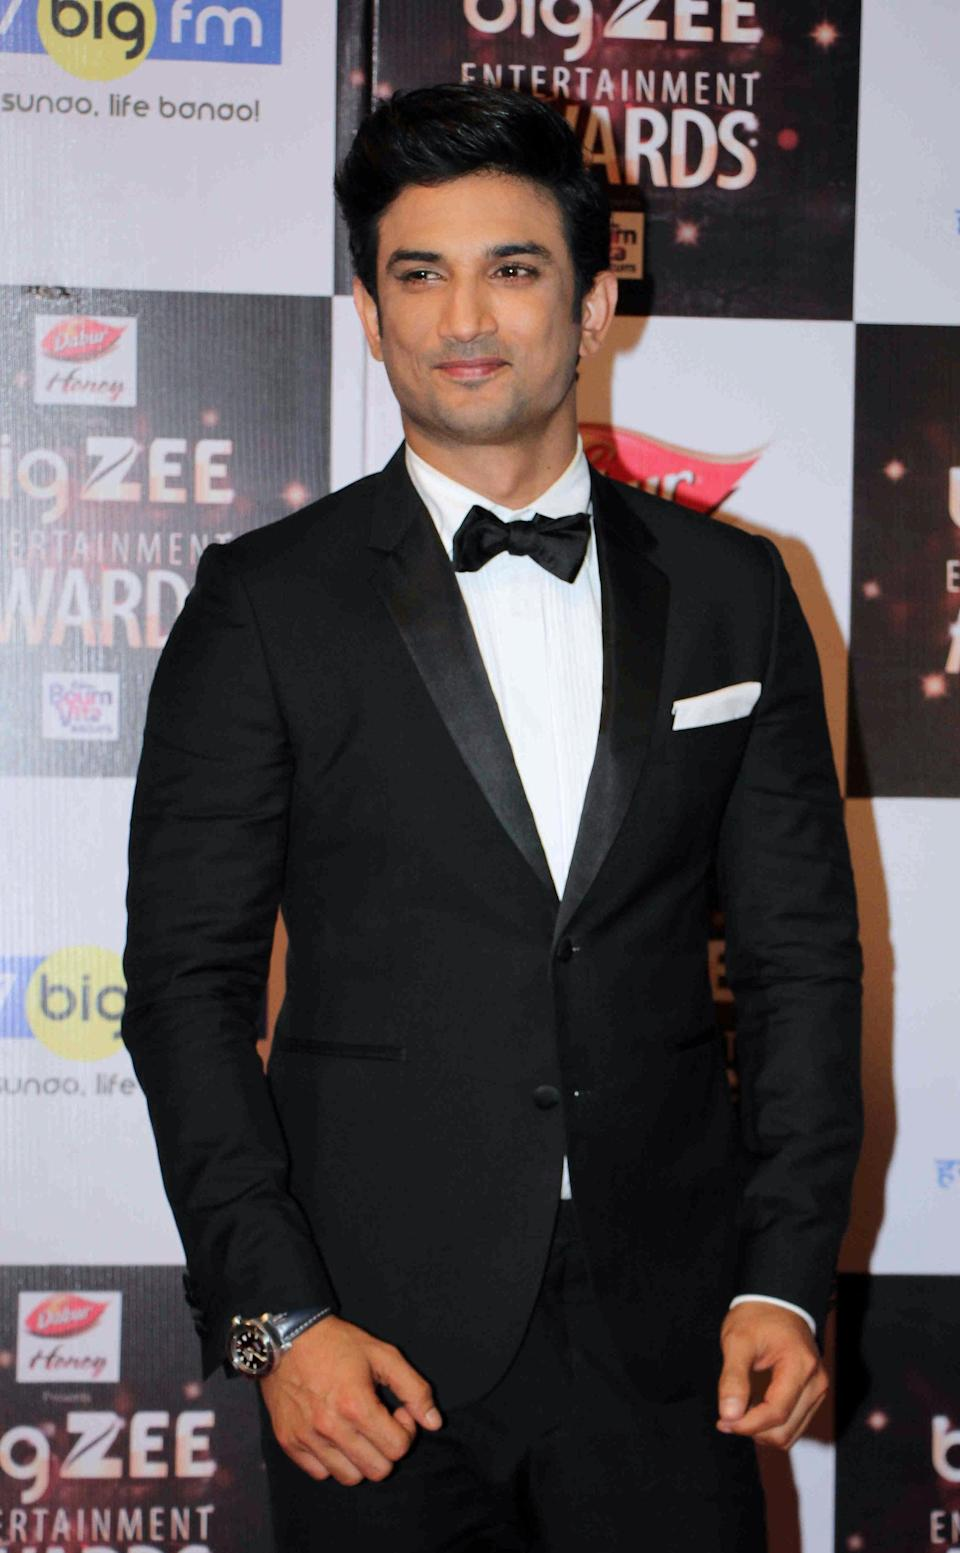 """<p>The Bollywood star was <a href=""""https://www.cnn.com/2020/06/14/world/sushant-singh-rajput-death-trnd/index.html"""" class=""""link rapid-noclick-resp"""" rel=""""nofollow noopener"""" target=""""_blank"""" data-ylk=""""slk:found dead in his Mumbai home on June 14"""">found dead in his Mumbai home on June 14</a>. Police say he took his own life, and an investigation has begun. He was 34.</p>"""